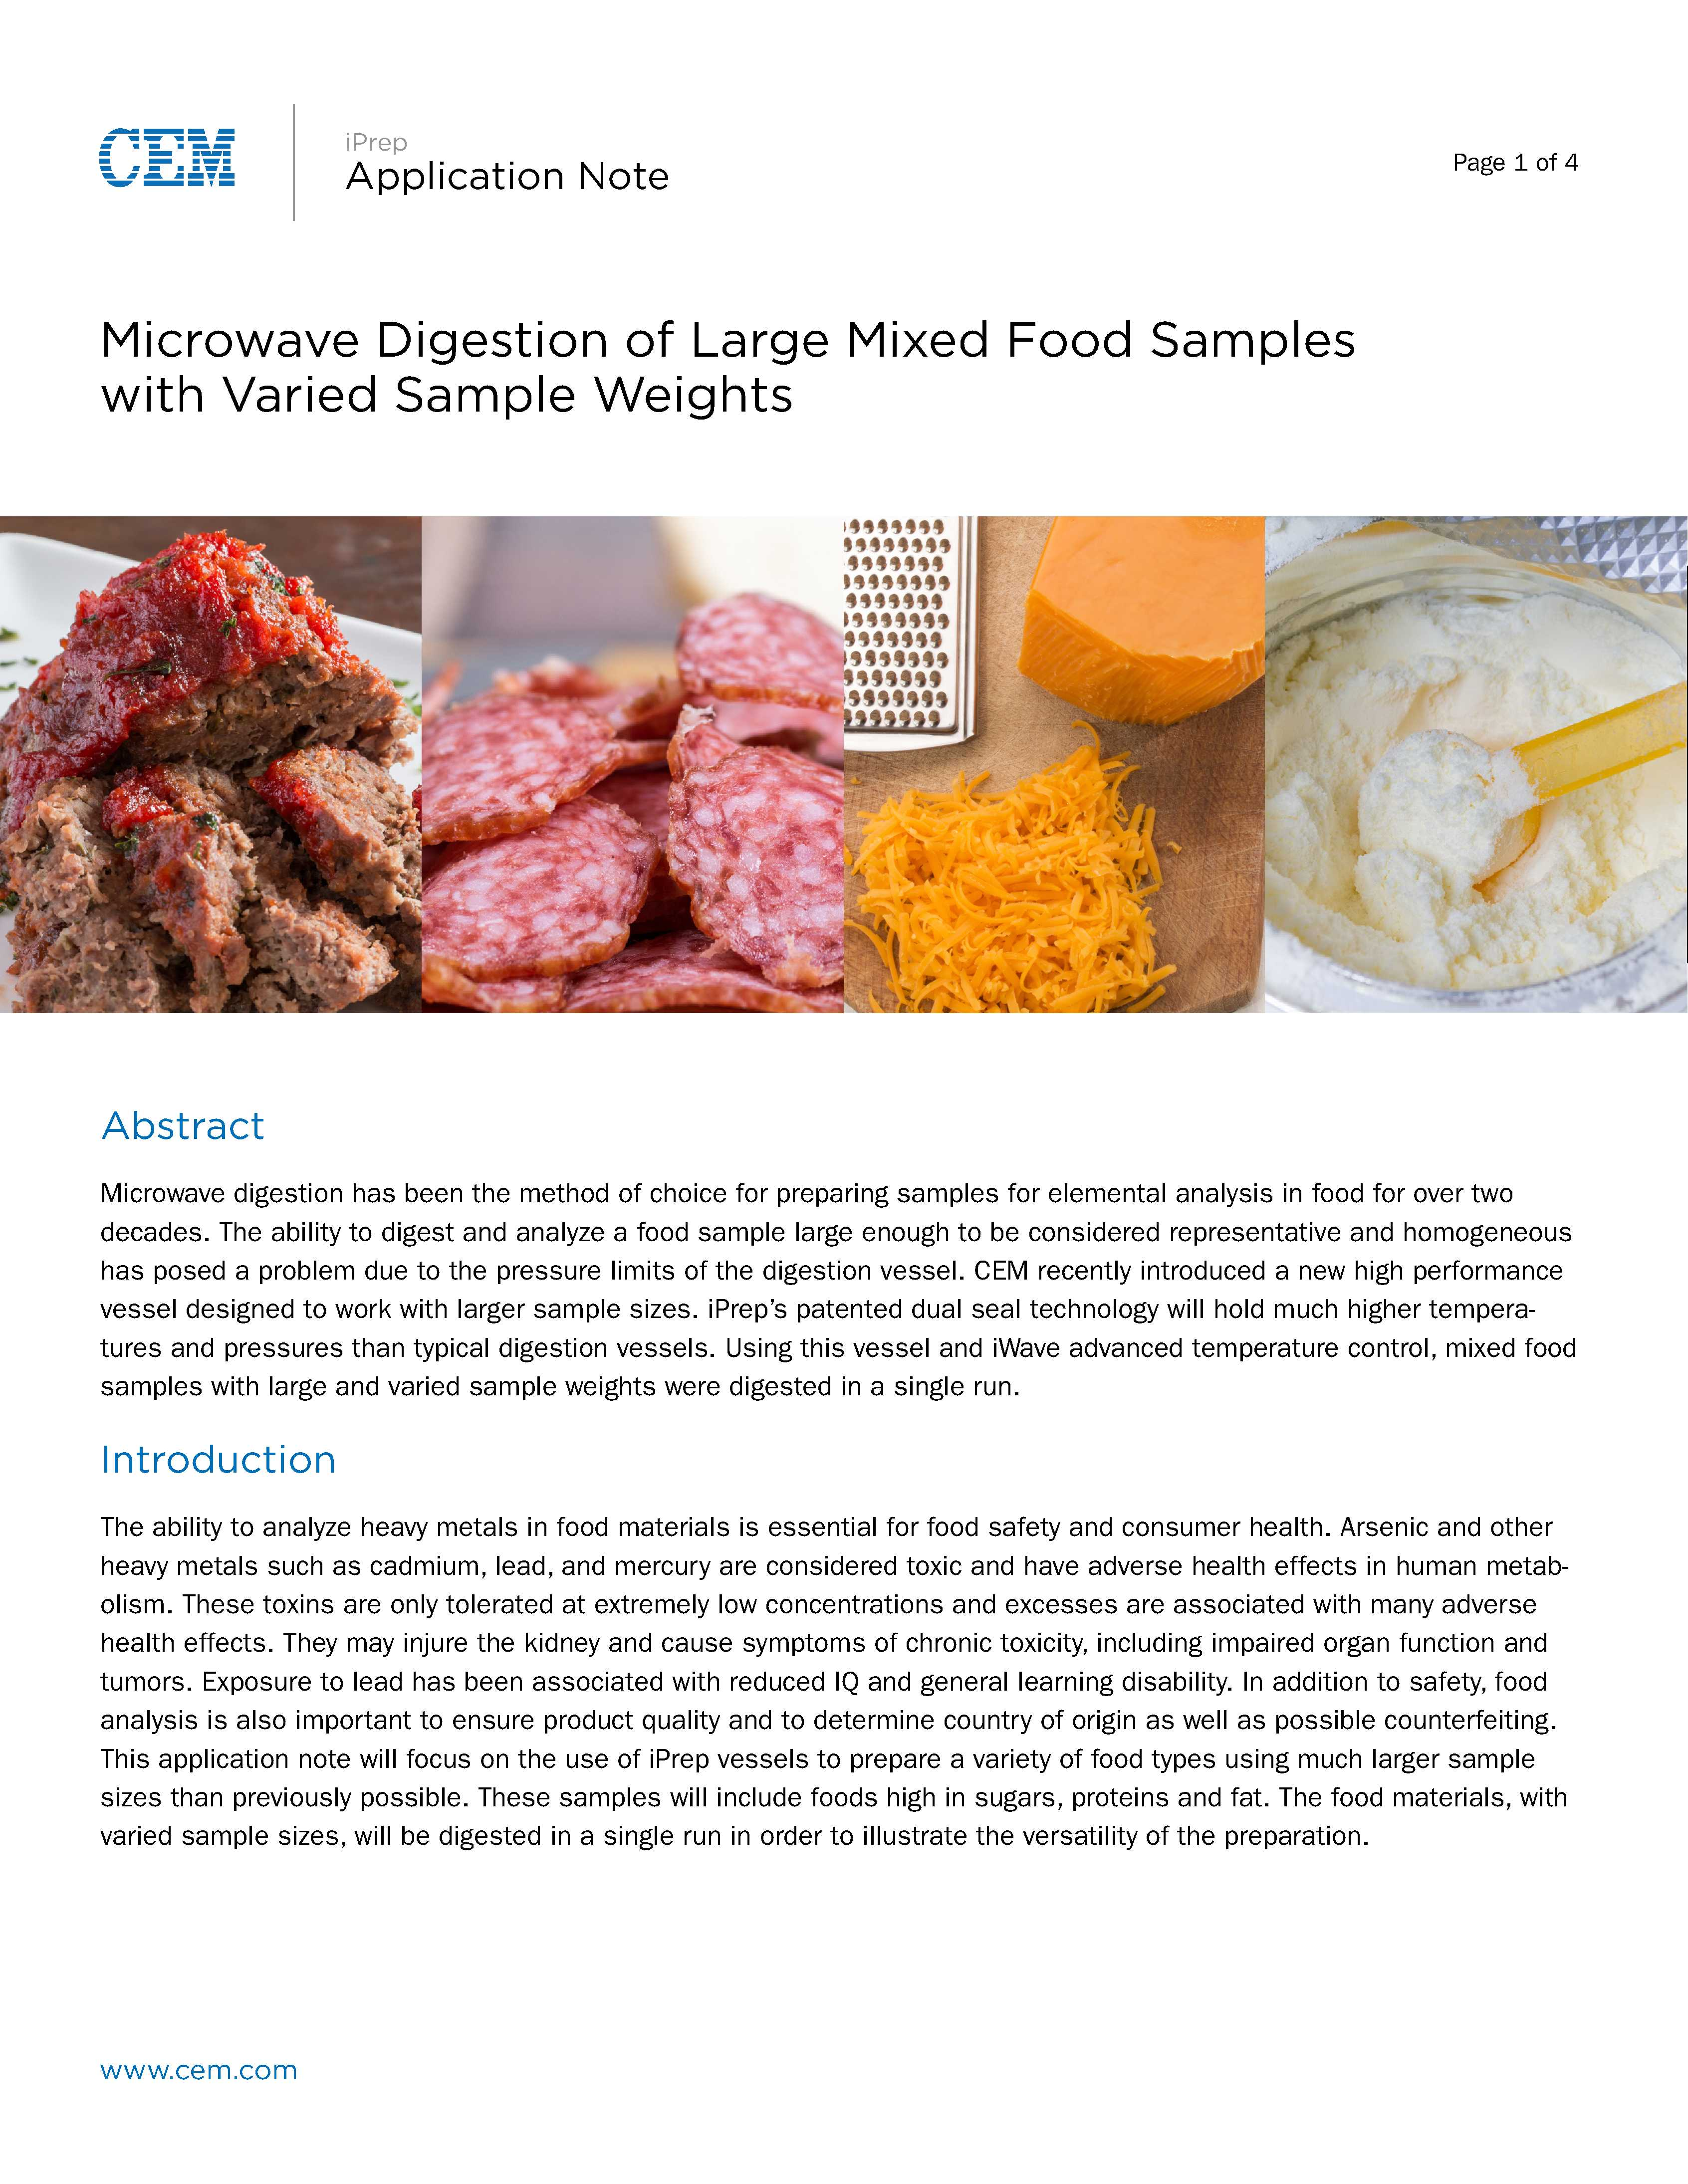 Microwave_Digestion_of_Large_Mixed_Food_Samples_1